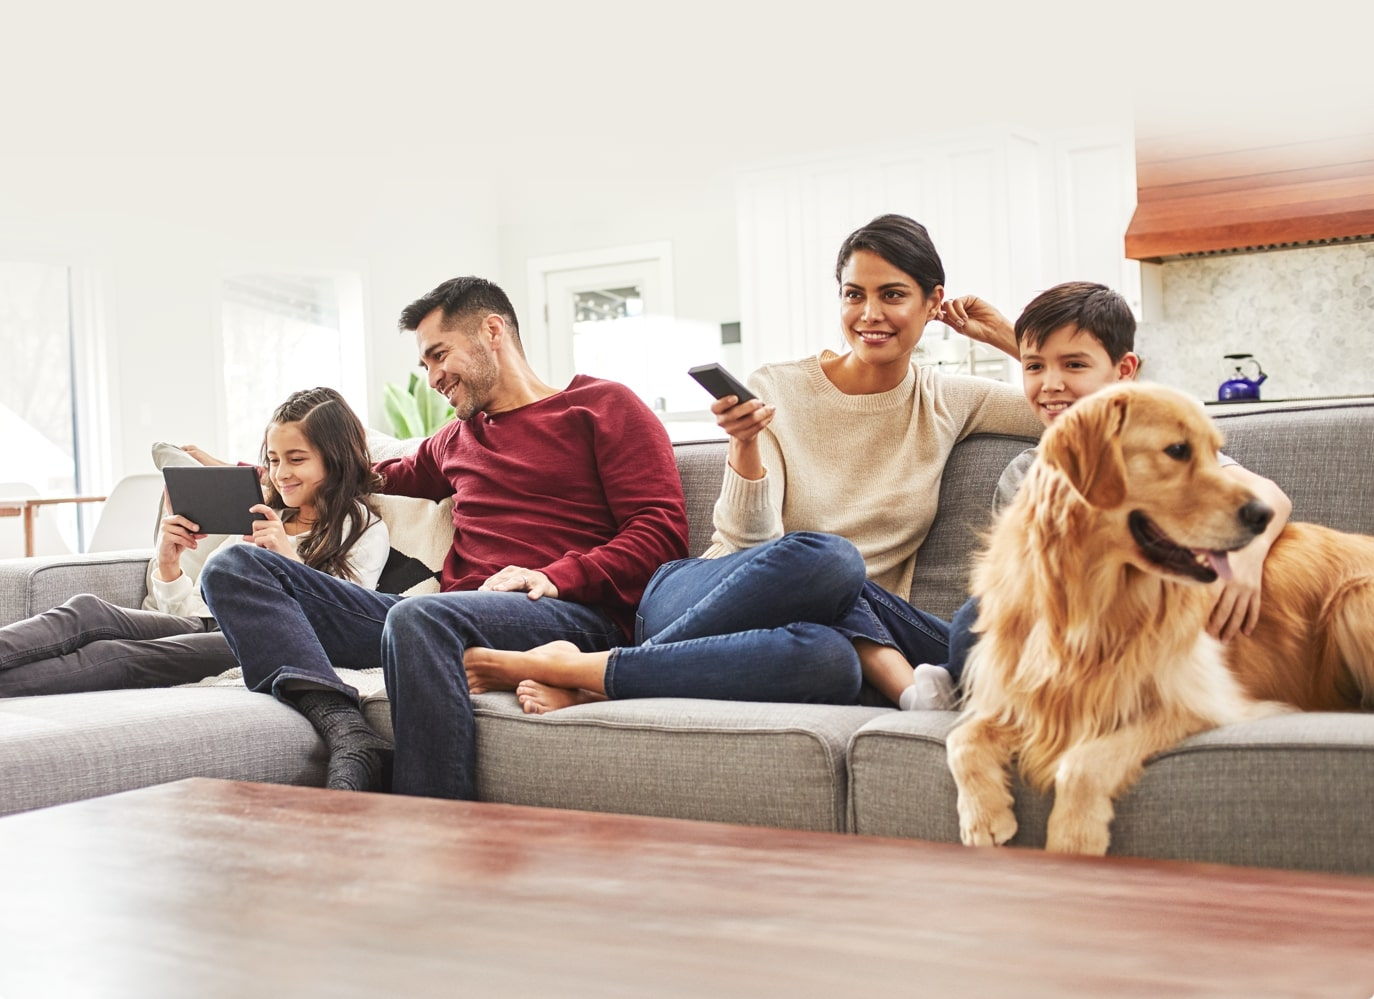 Family on couch with golden retriever